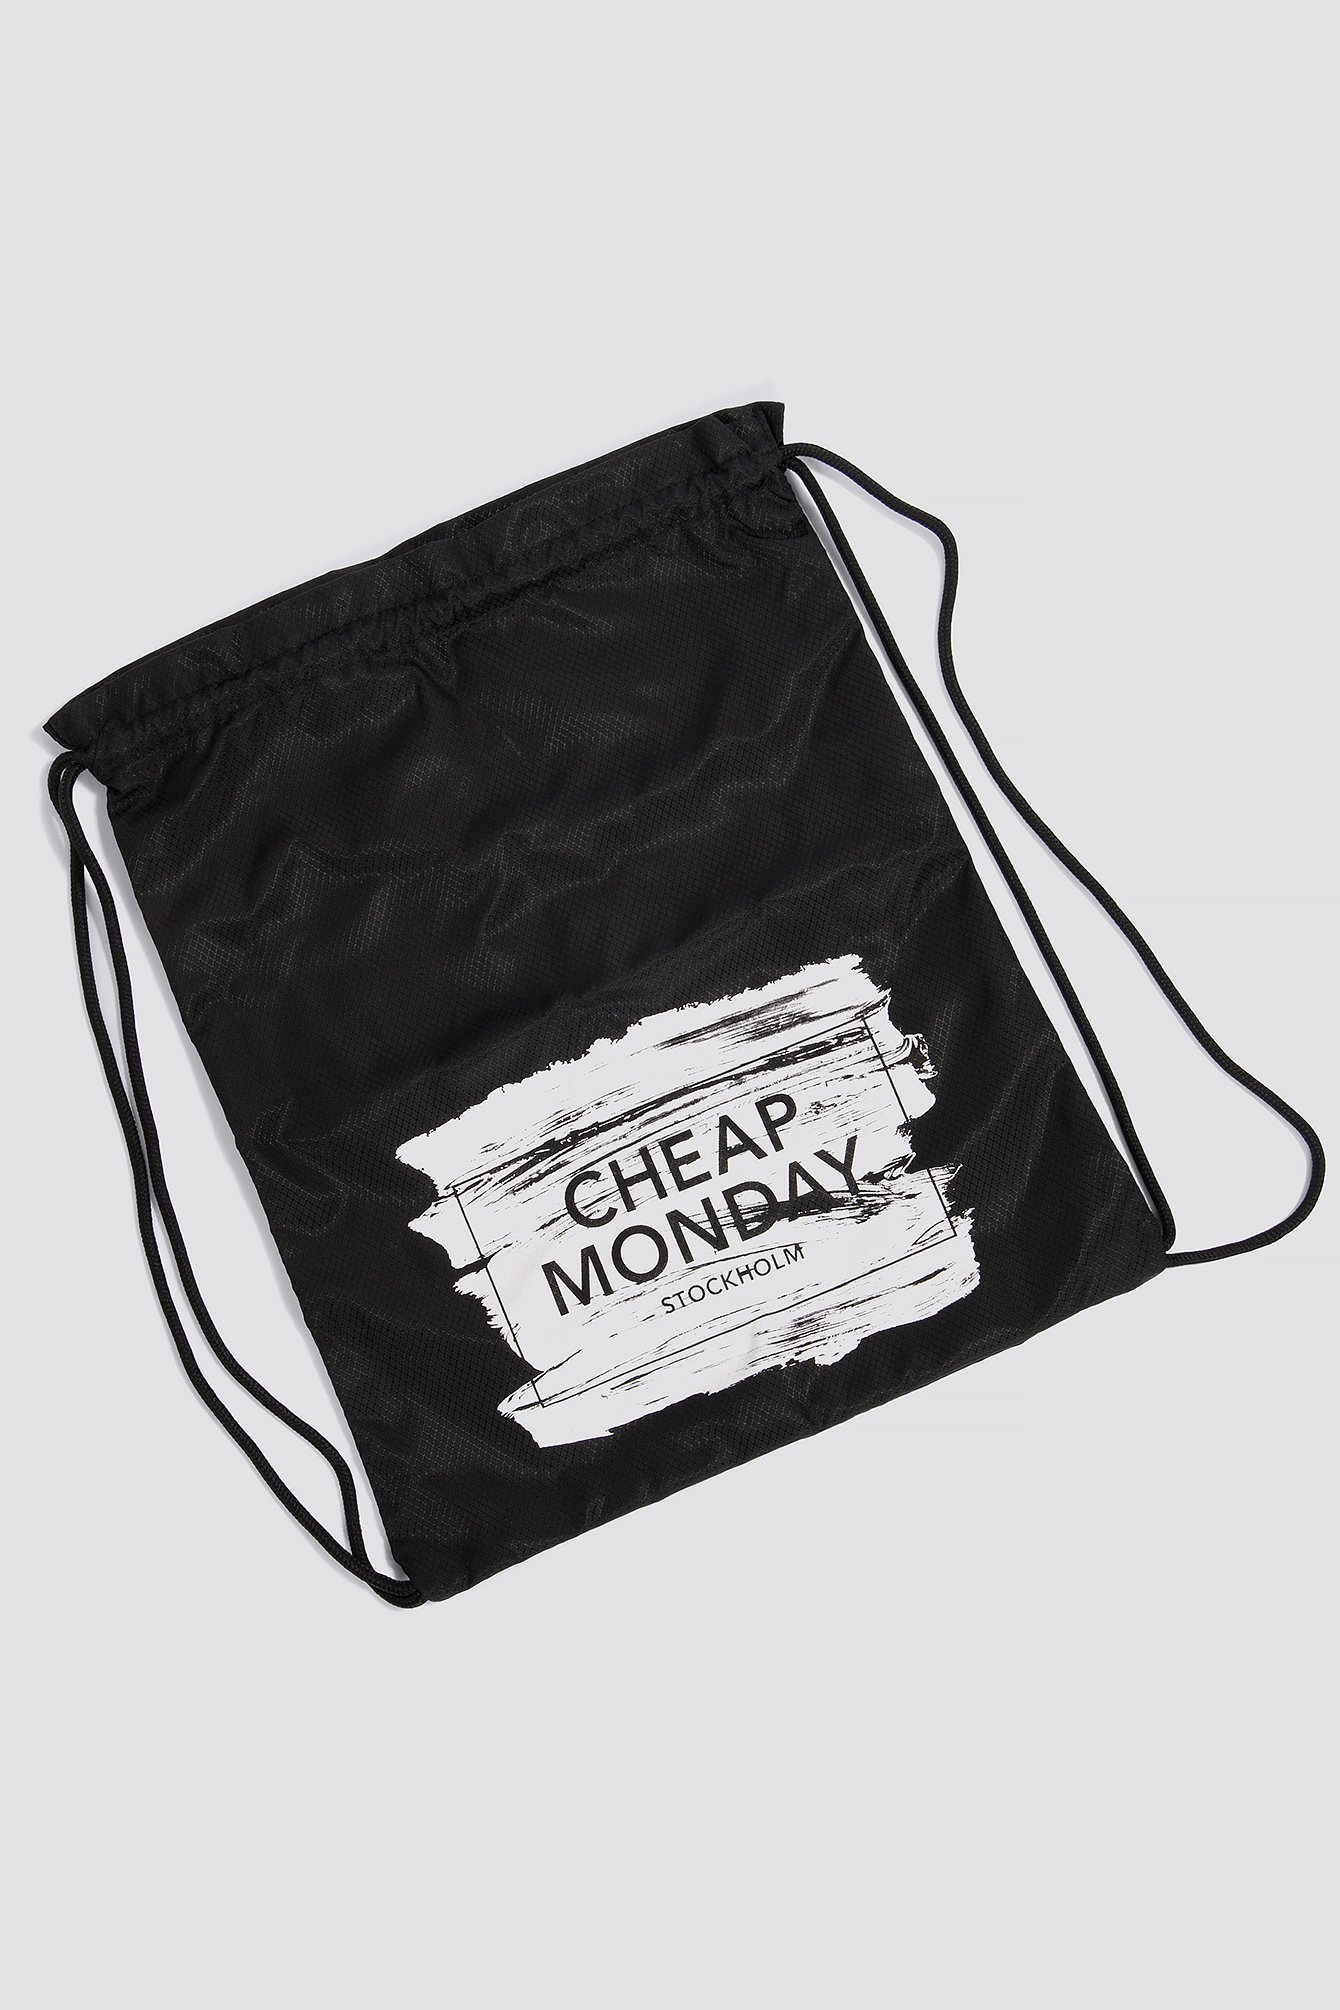 88a6264159 Buy kd gym bag   Up to 60% Discounts